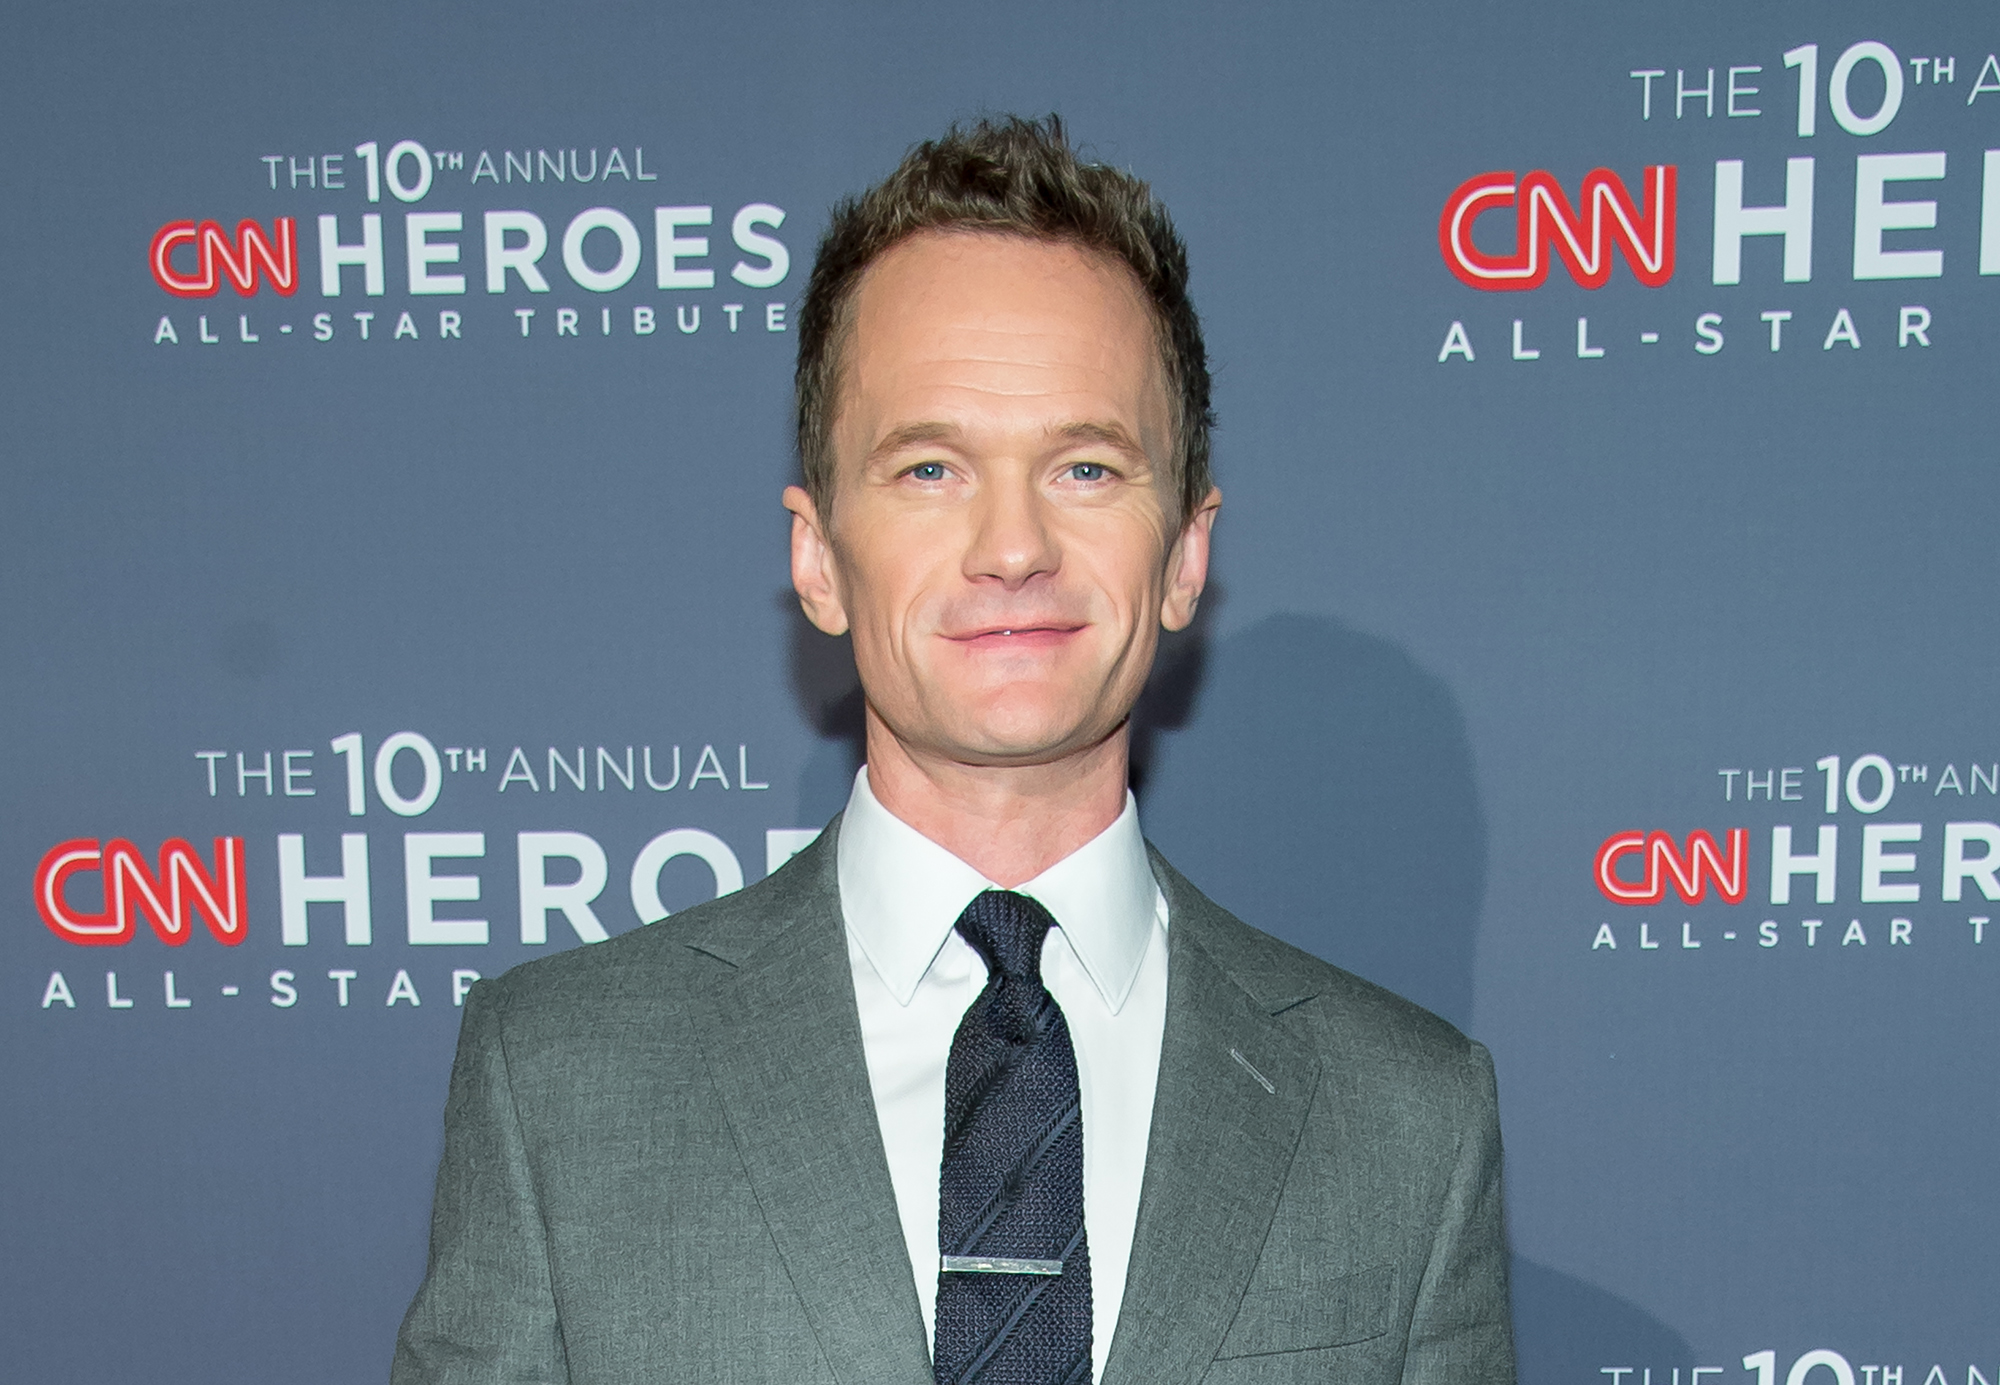 Neil Patrick Harris attends the 10th Anniversary CNN Heroes at American Museum of Natural History on December 11, 2016 in New York City.  (Photo by Roy Rochlin/FilmMagic)